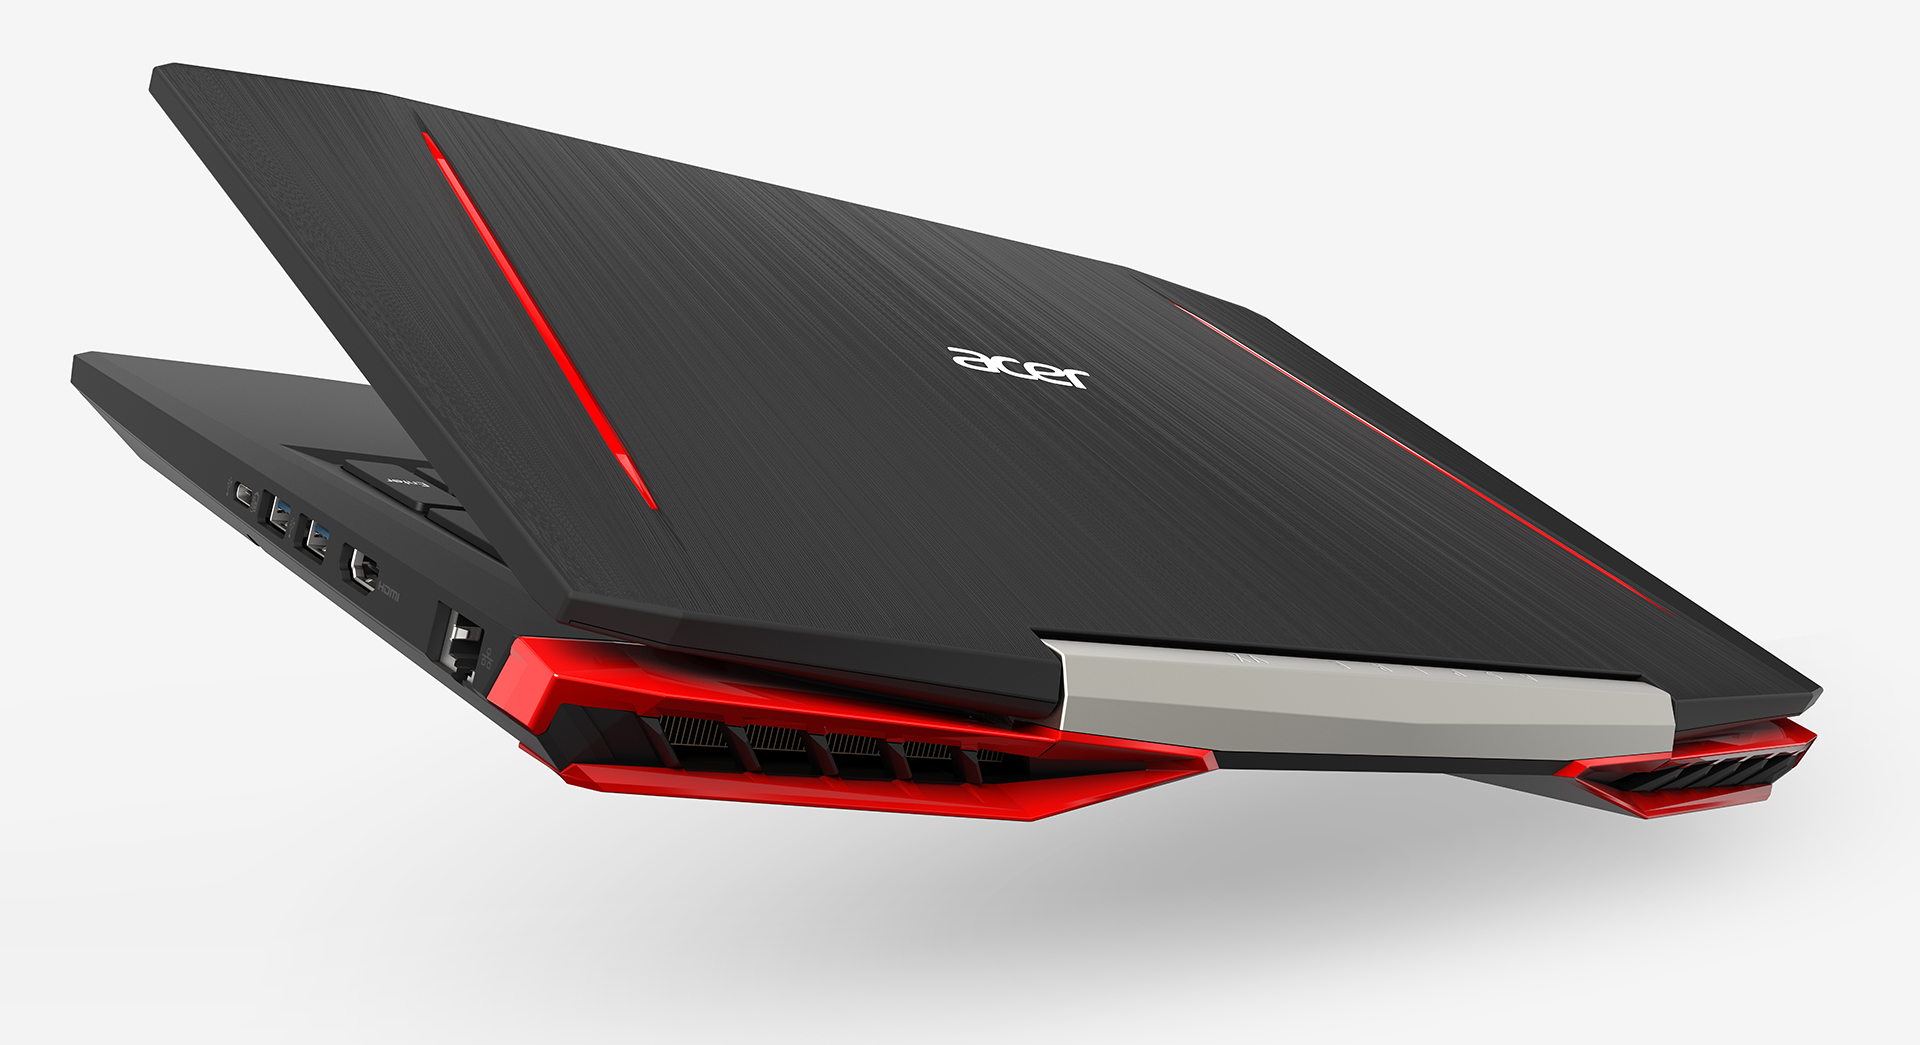 Acer Aspire VX15 overview design